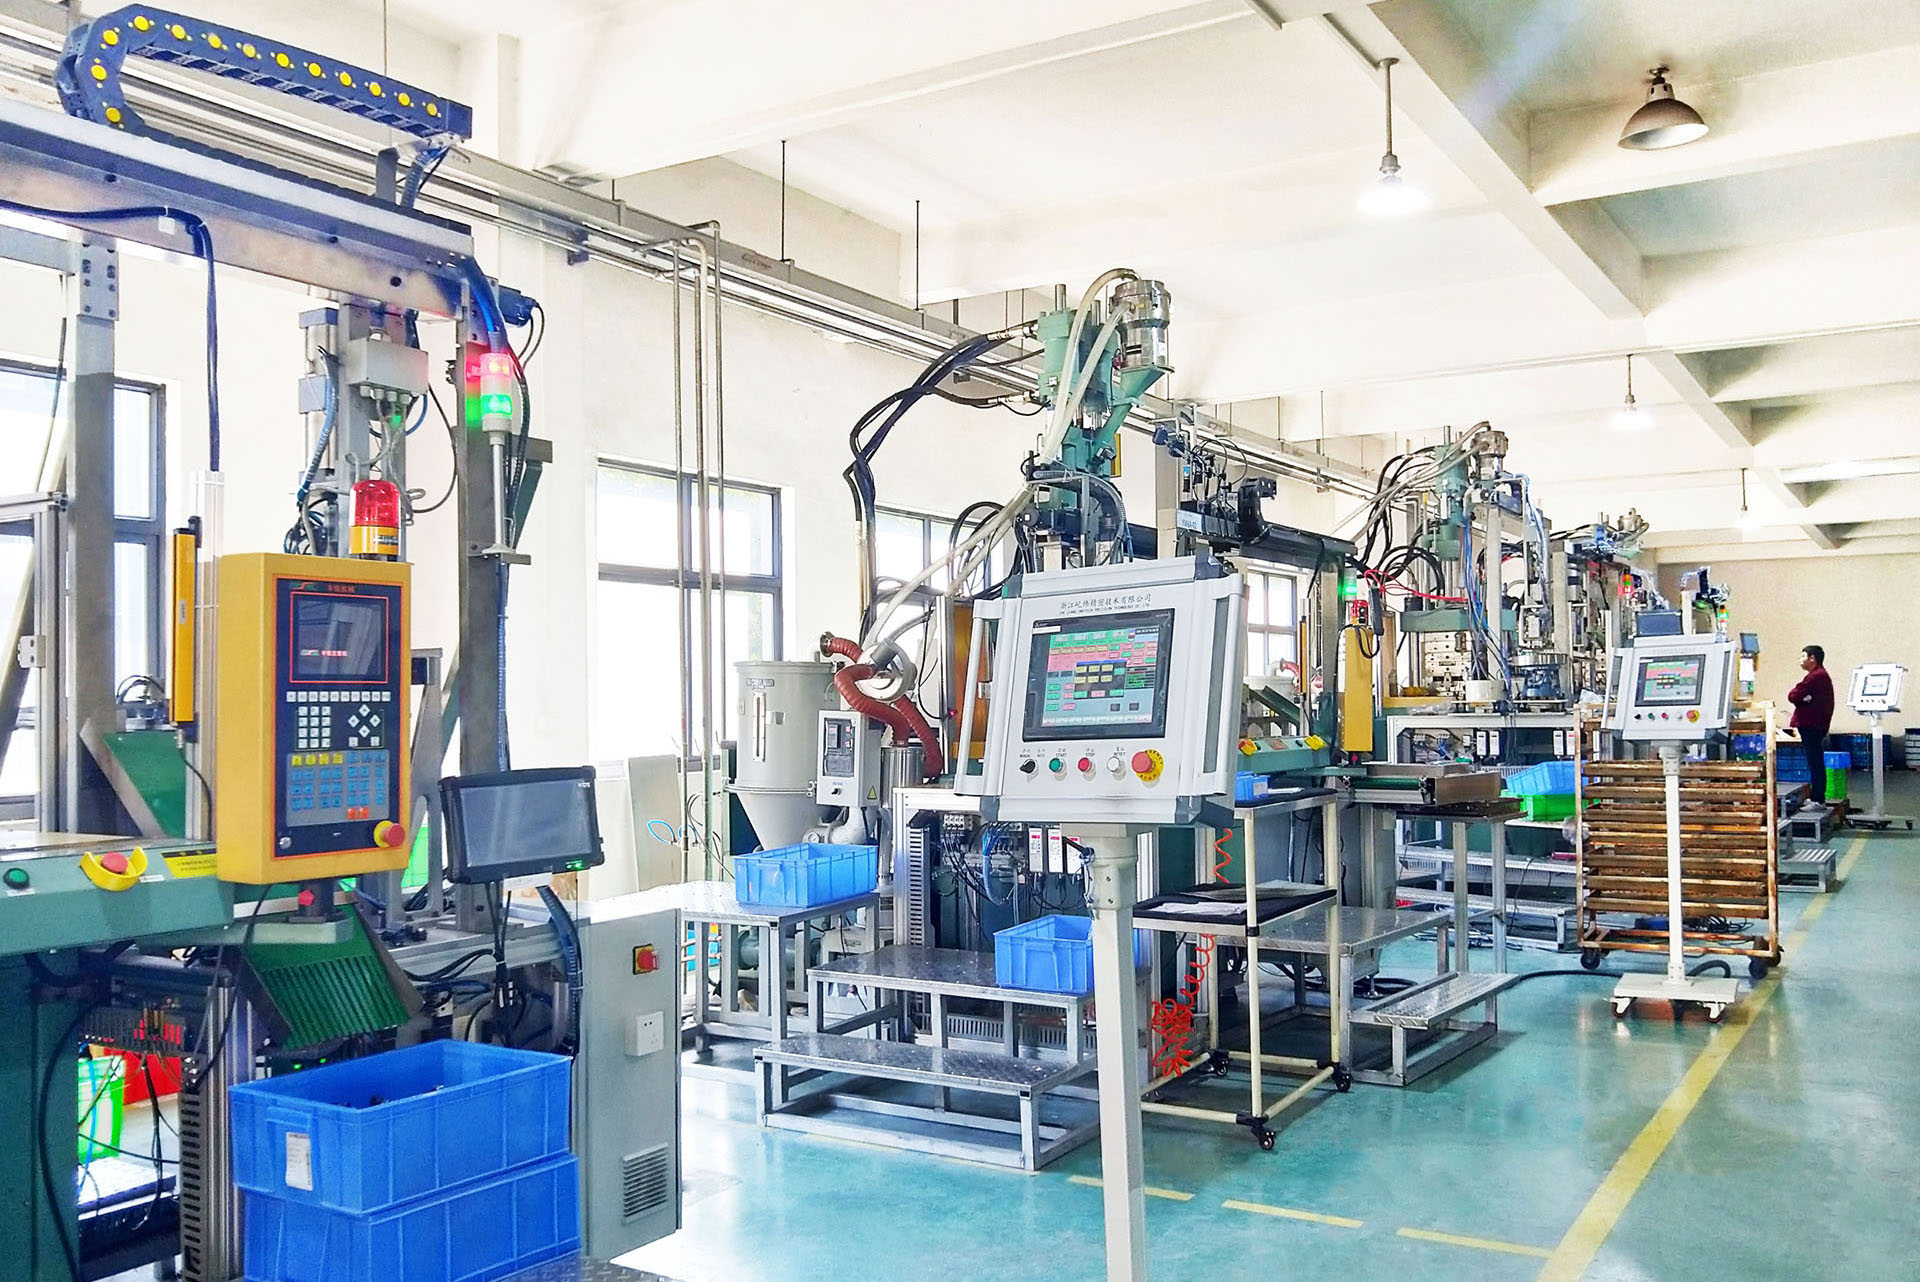 The heat dissipation problem in plastic injection molding